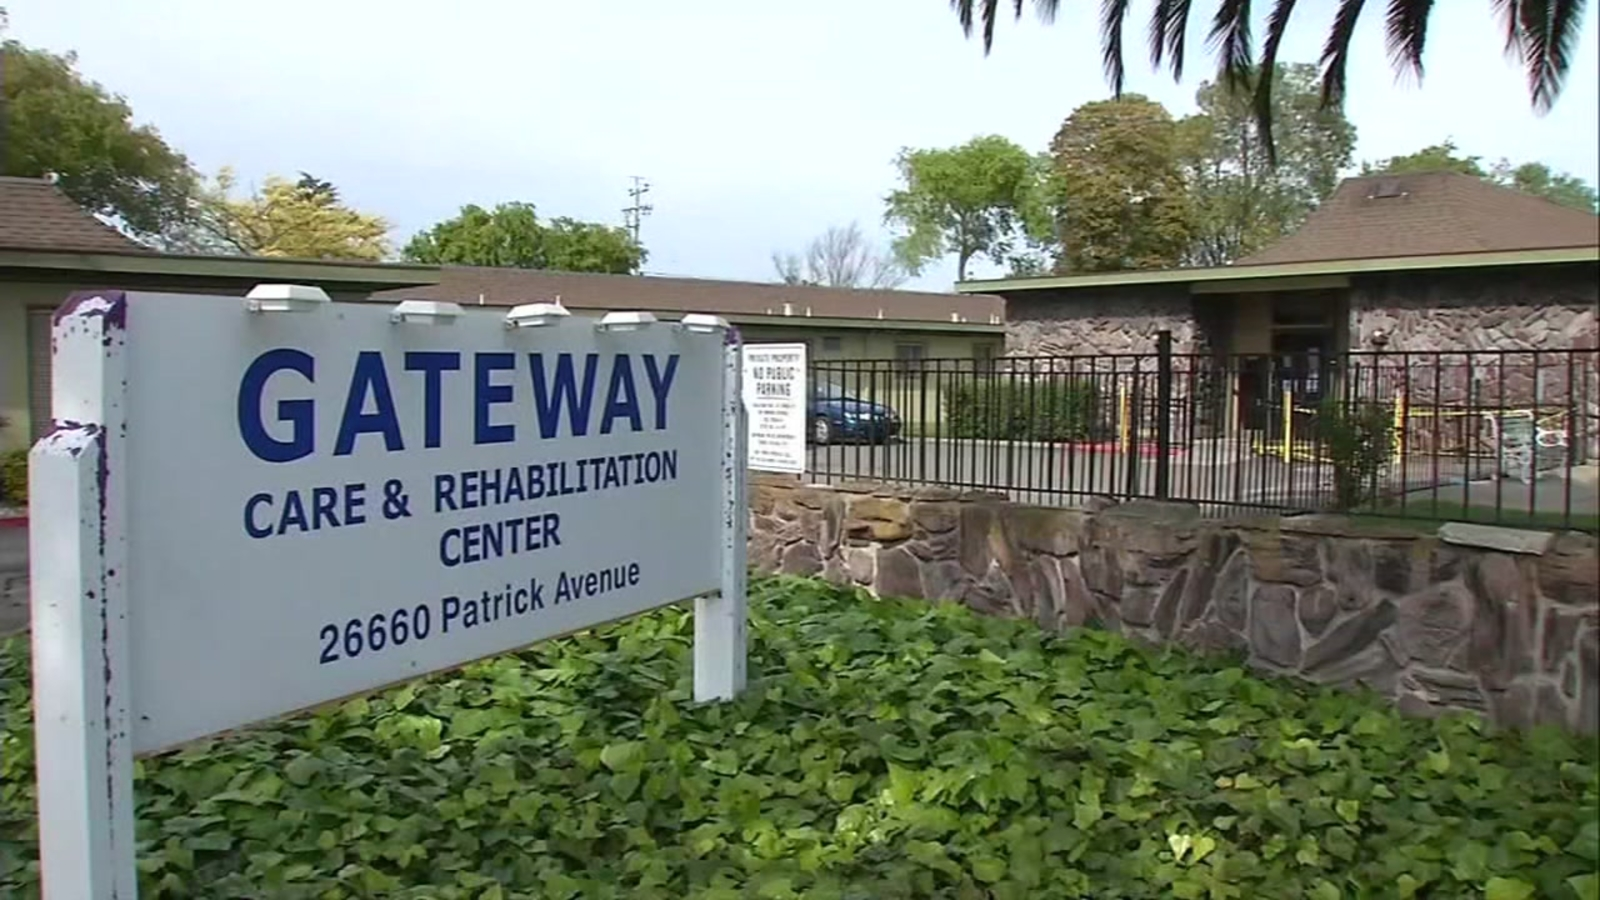 Coronavirus Outbreak 7 Dead 65 Total Covid 19 Cases At Gateway Care Rehab Center In Hayward Abc7 San Francisco